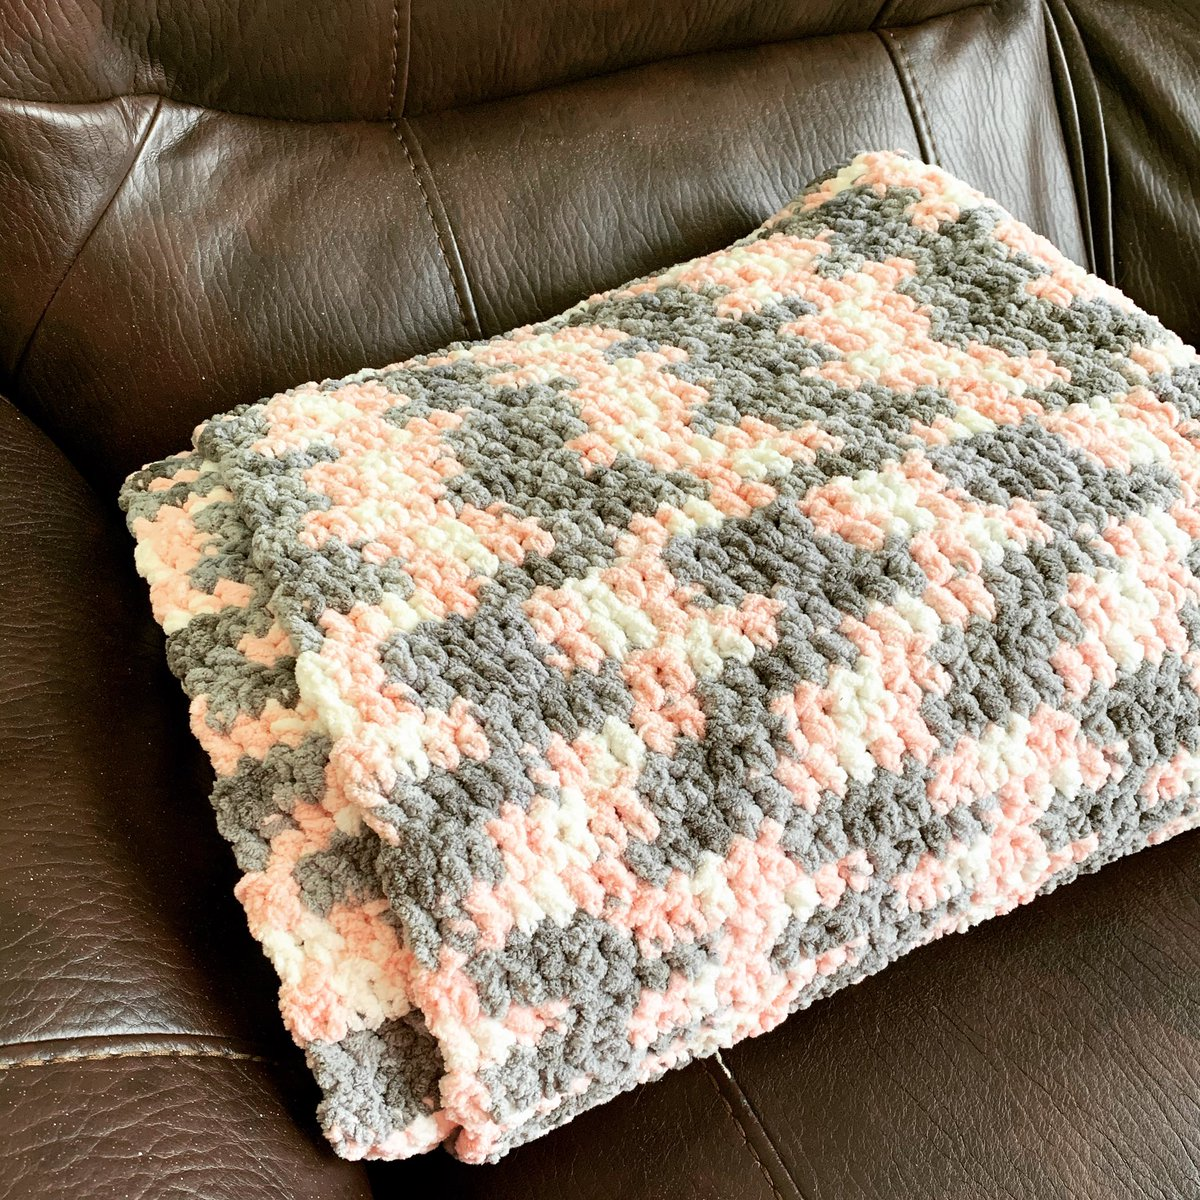 Finished one crochet blanket for a friend. Learned a new stitch and began another blanket. #practice #learning #crochetpic.twitter.com/nQHBtEUbUM